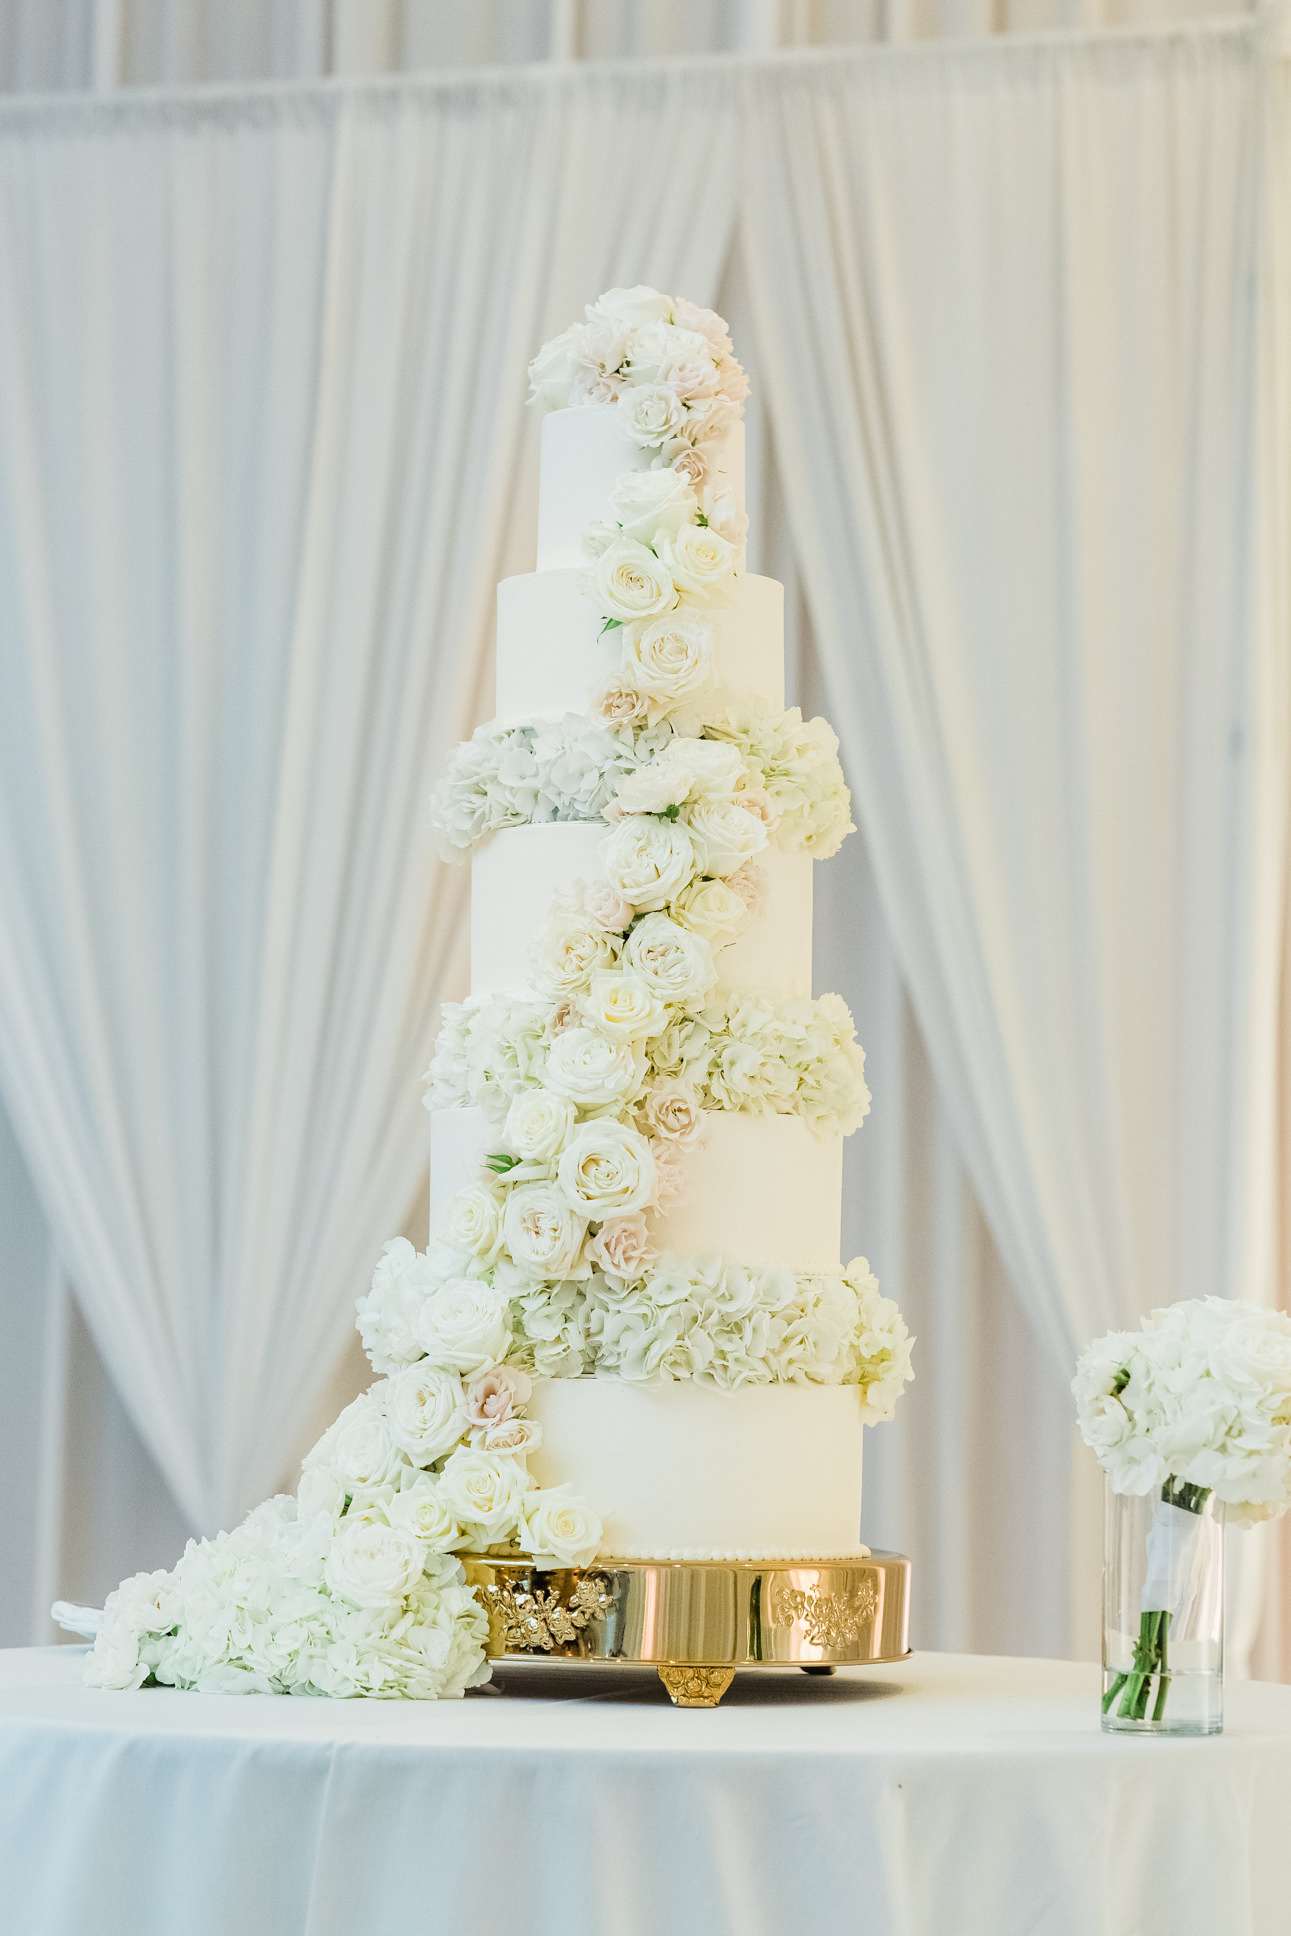 Elegant Classic Five Tier White Wedding Cake with Ivory and Blush Pink Roses Lush Cascading Flowers on Gold Cake Stand   Wedding Caterer and Cake St. Pete Vinoy Renaissance